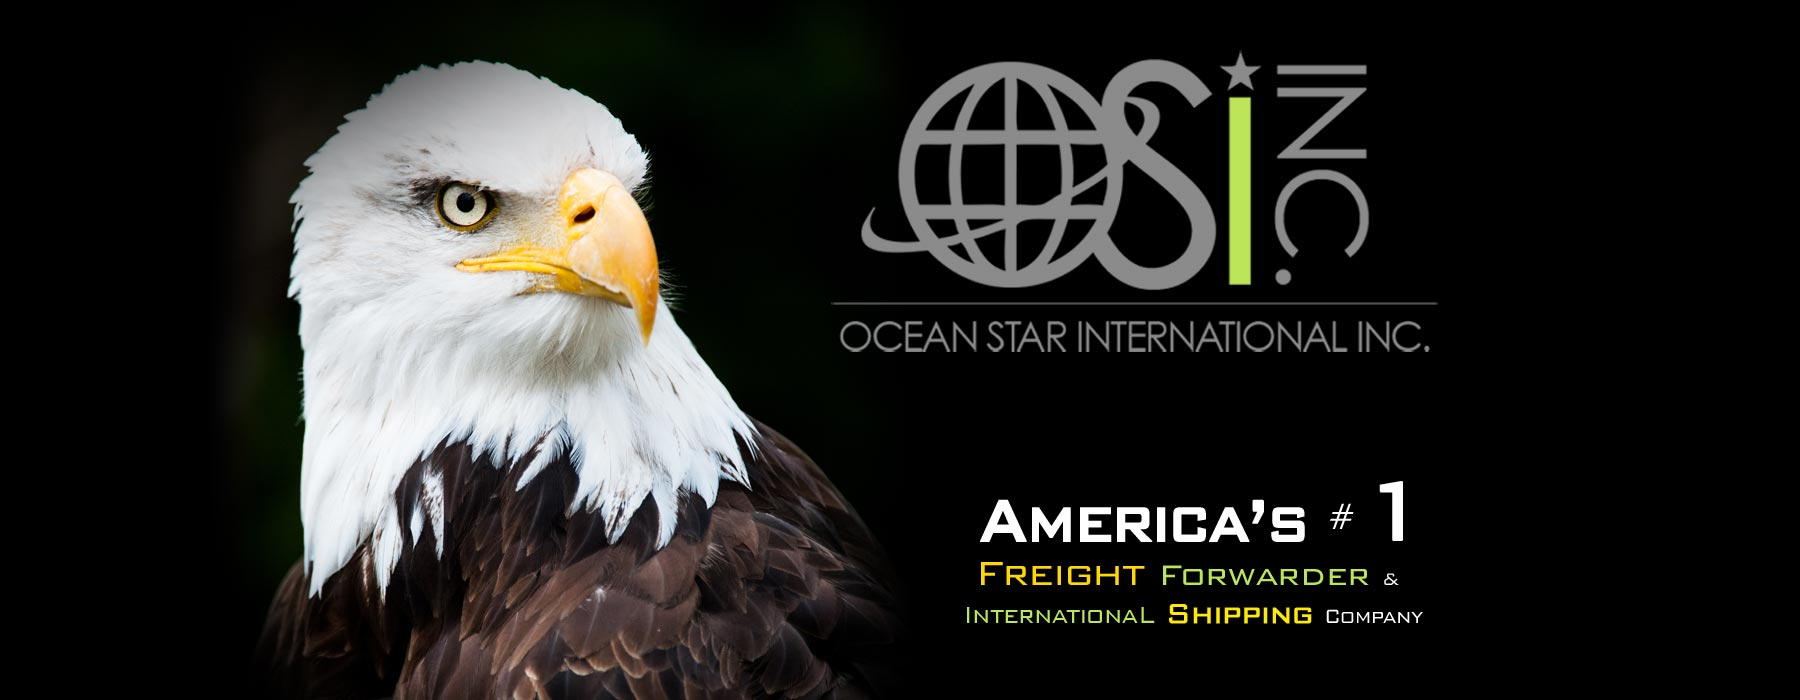 osi-international-shipping-company